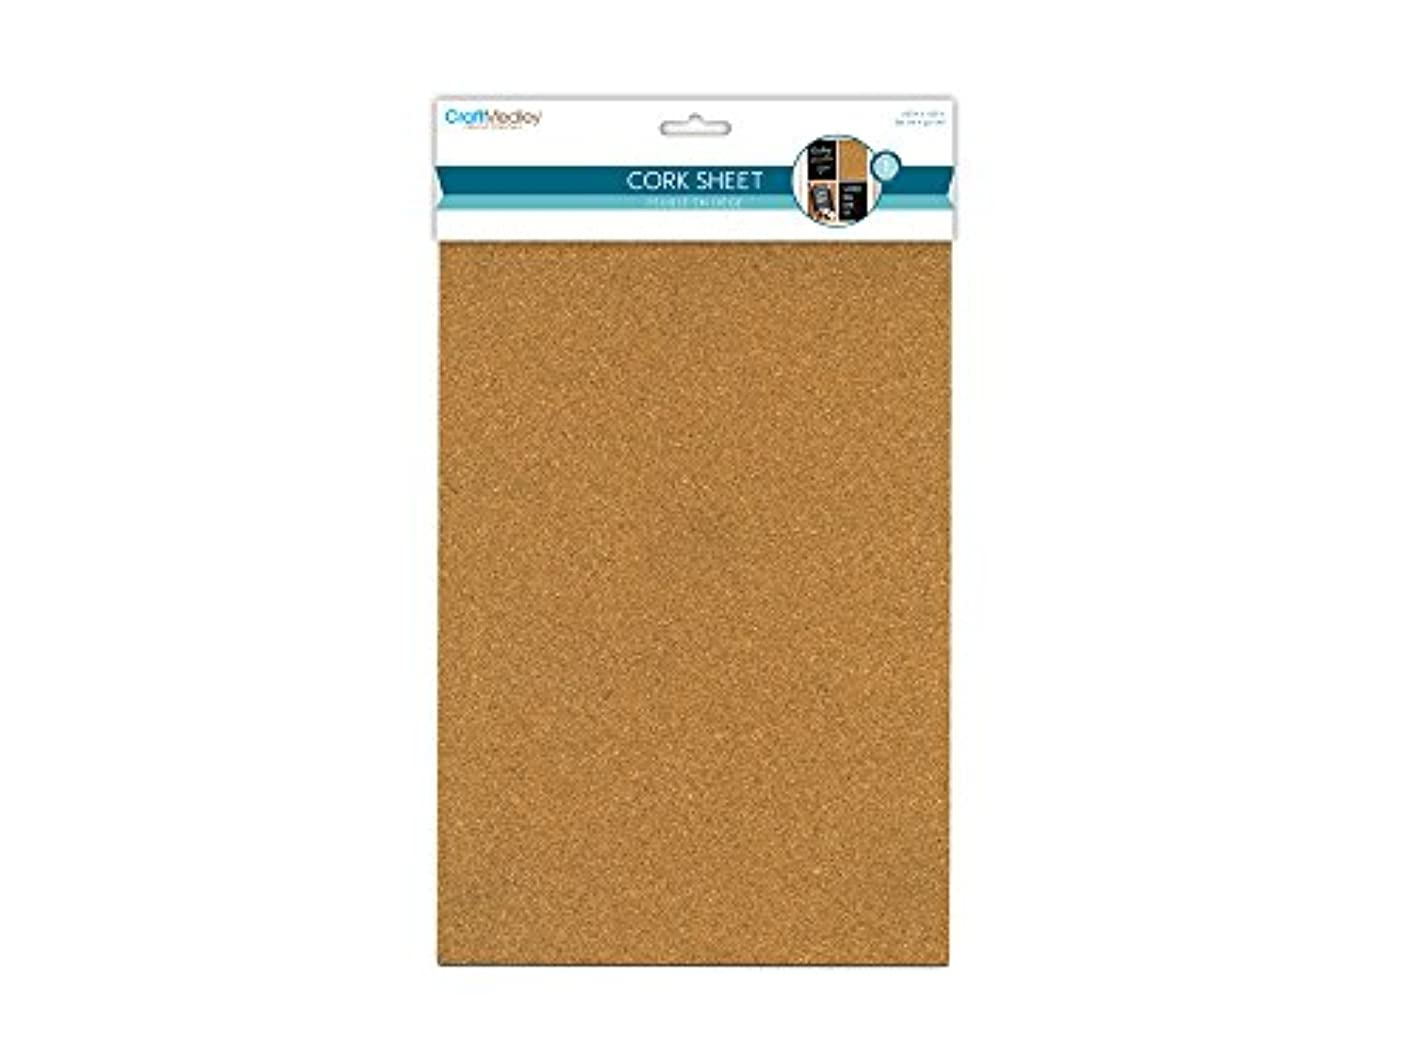 CraftMedley DIY Cork Sheet, 7.87in by 11.81in, 2mm Thick, 7.87